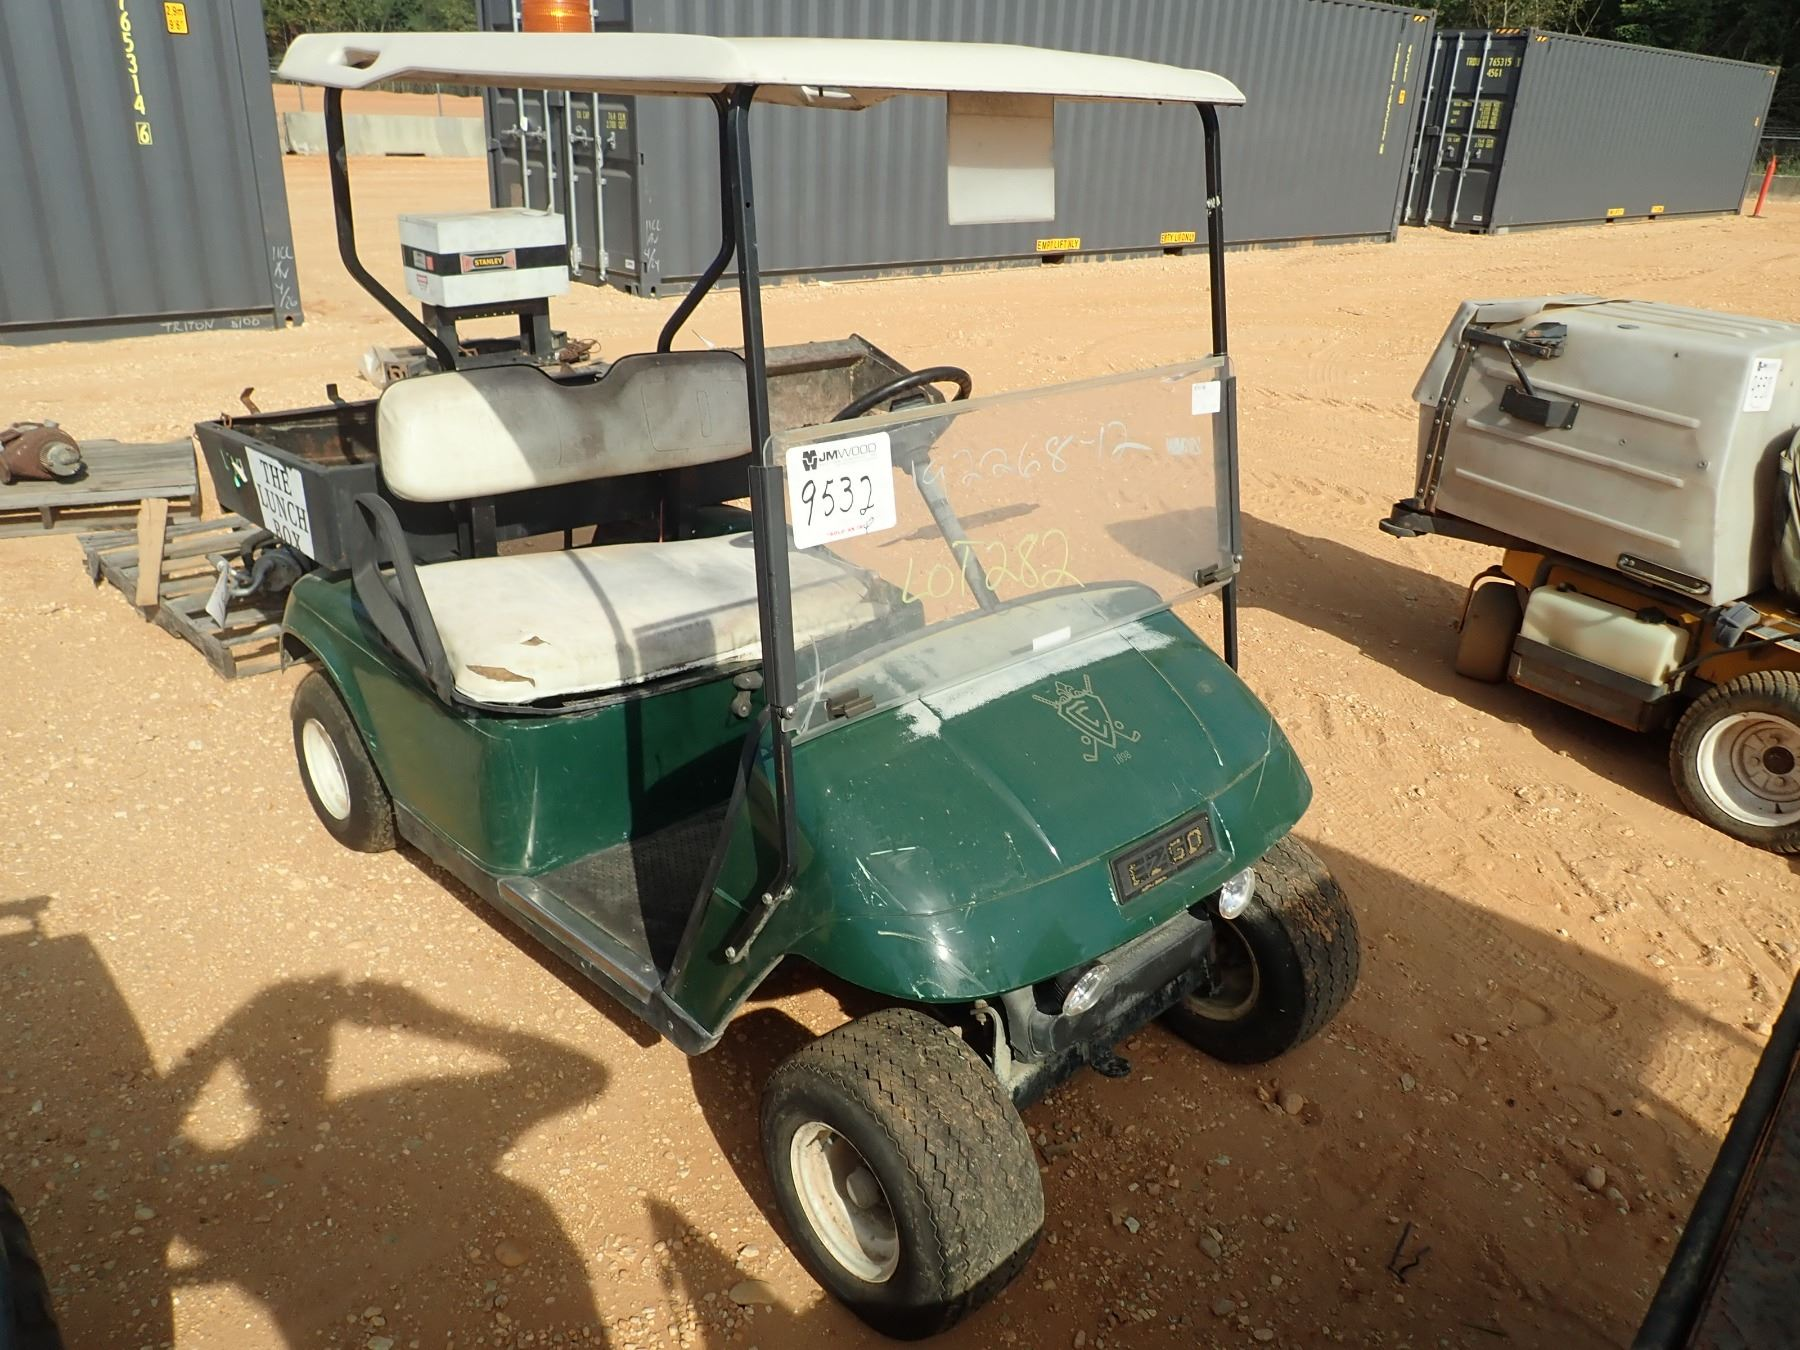 E-Z GO GOLF CART, ELECTRIC (DOES NOT OPERATE) (C-8) - J.M ...